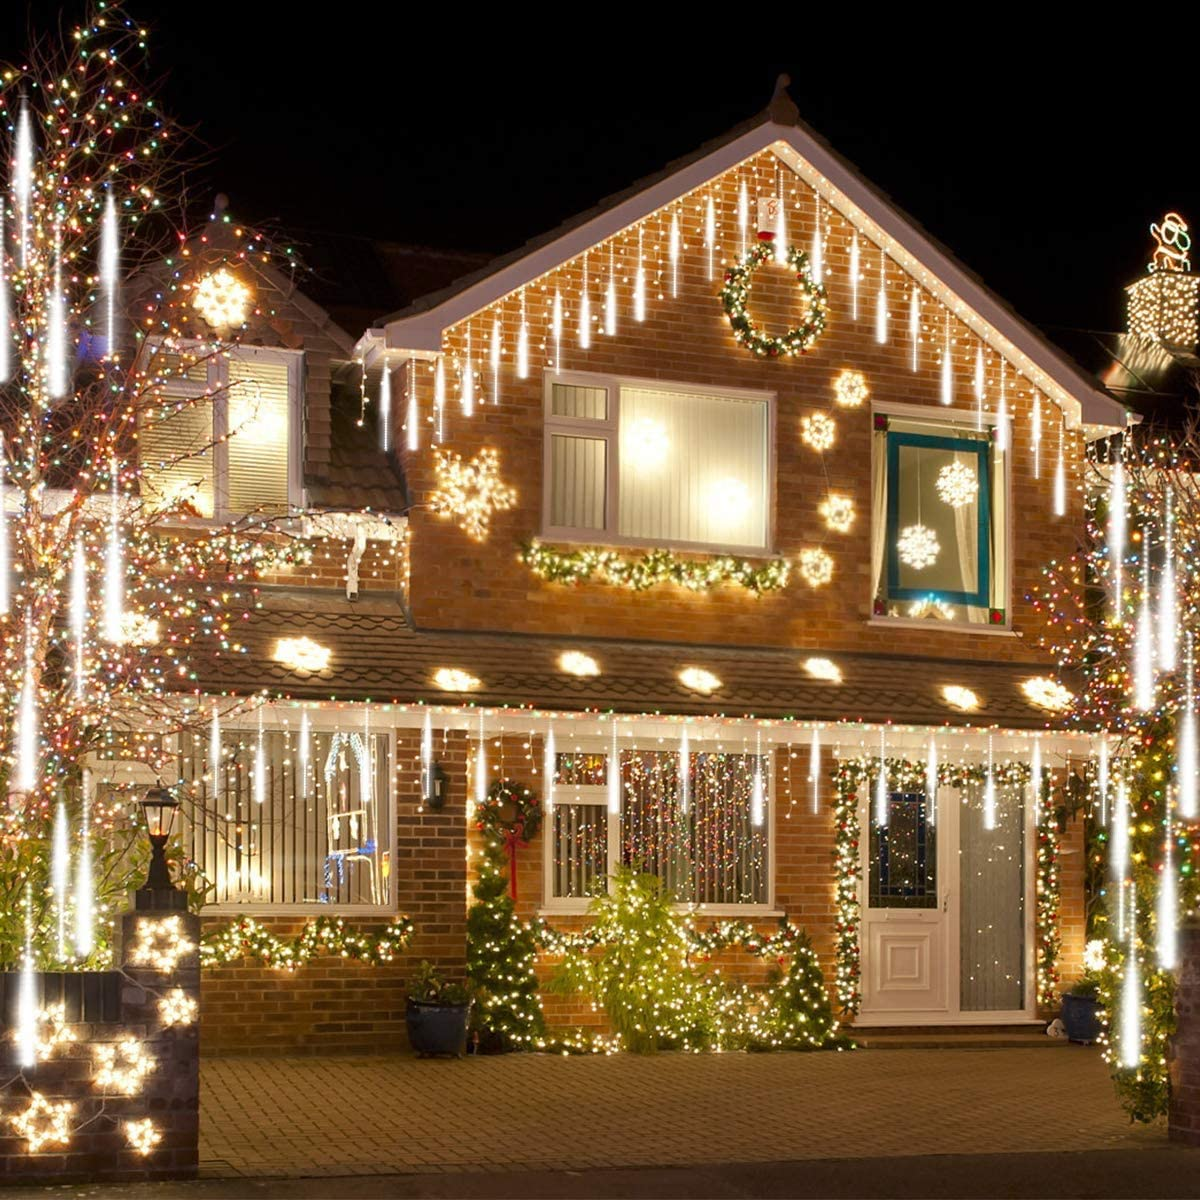 🔥The More You Buy, The More Cost-Effective🔥Snow Fall LED Lights Set (Extension Plug Included)